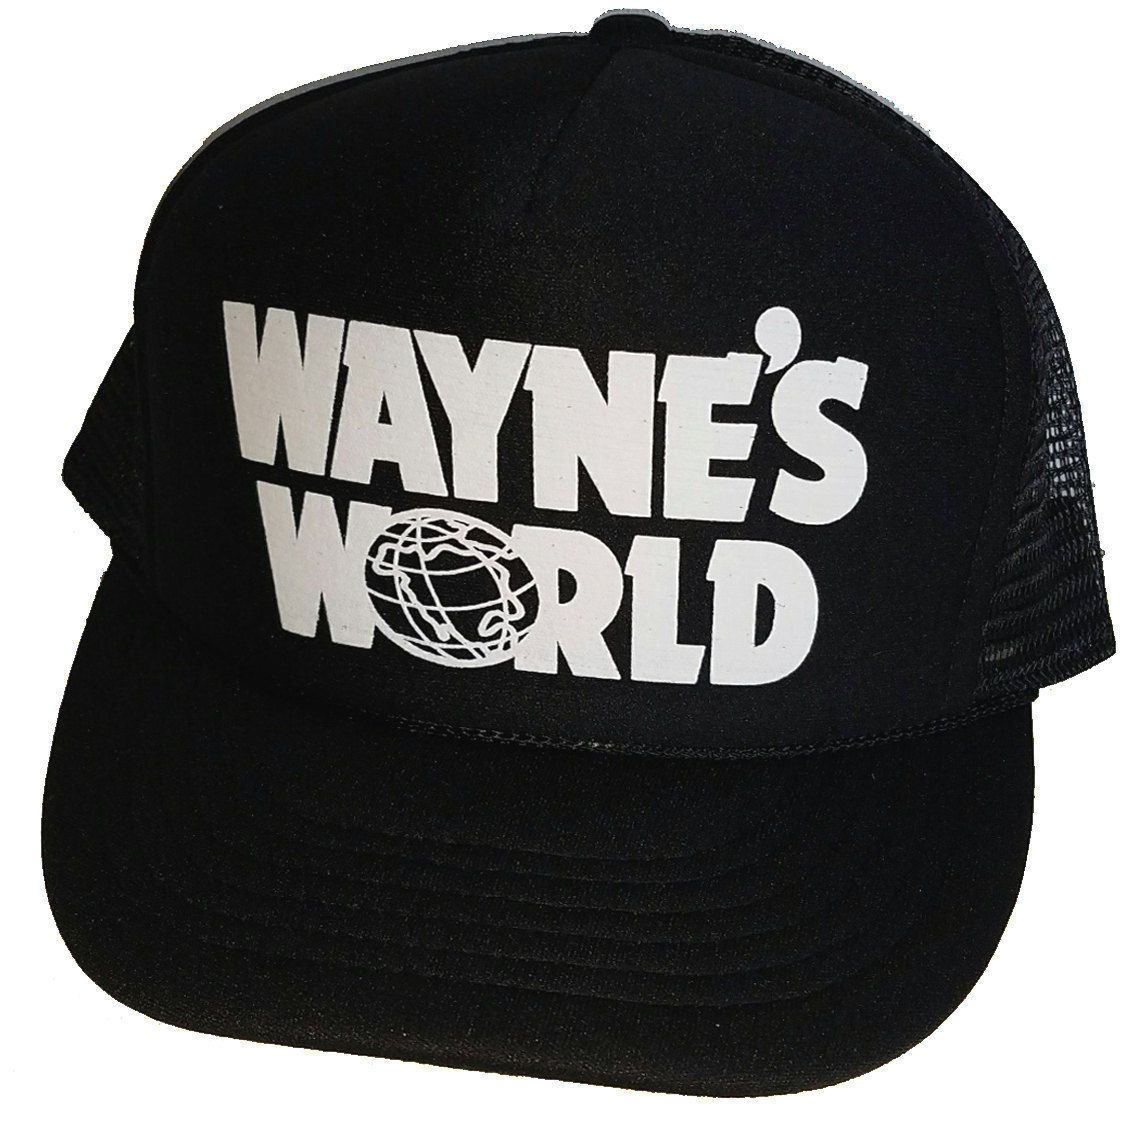 35864950d0845 Wayne s World Halloween Costume Snapback Mesh Trucker Hat Cap  ebay  Fashion